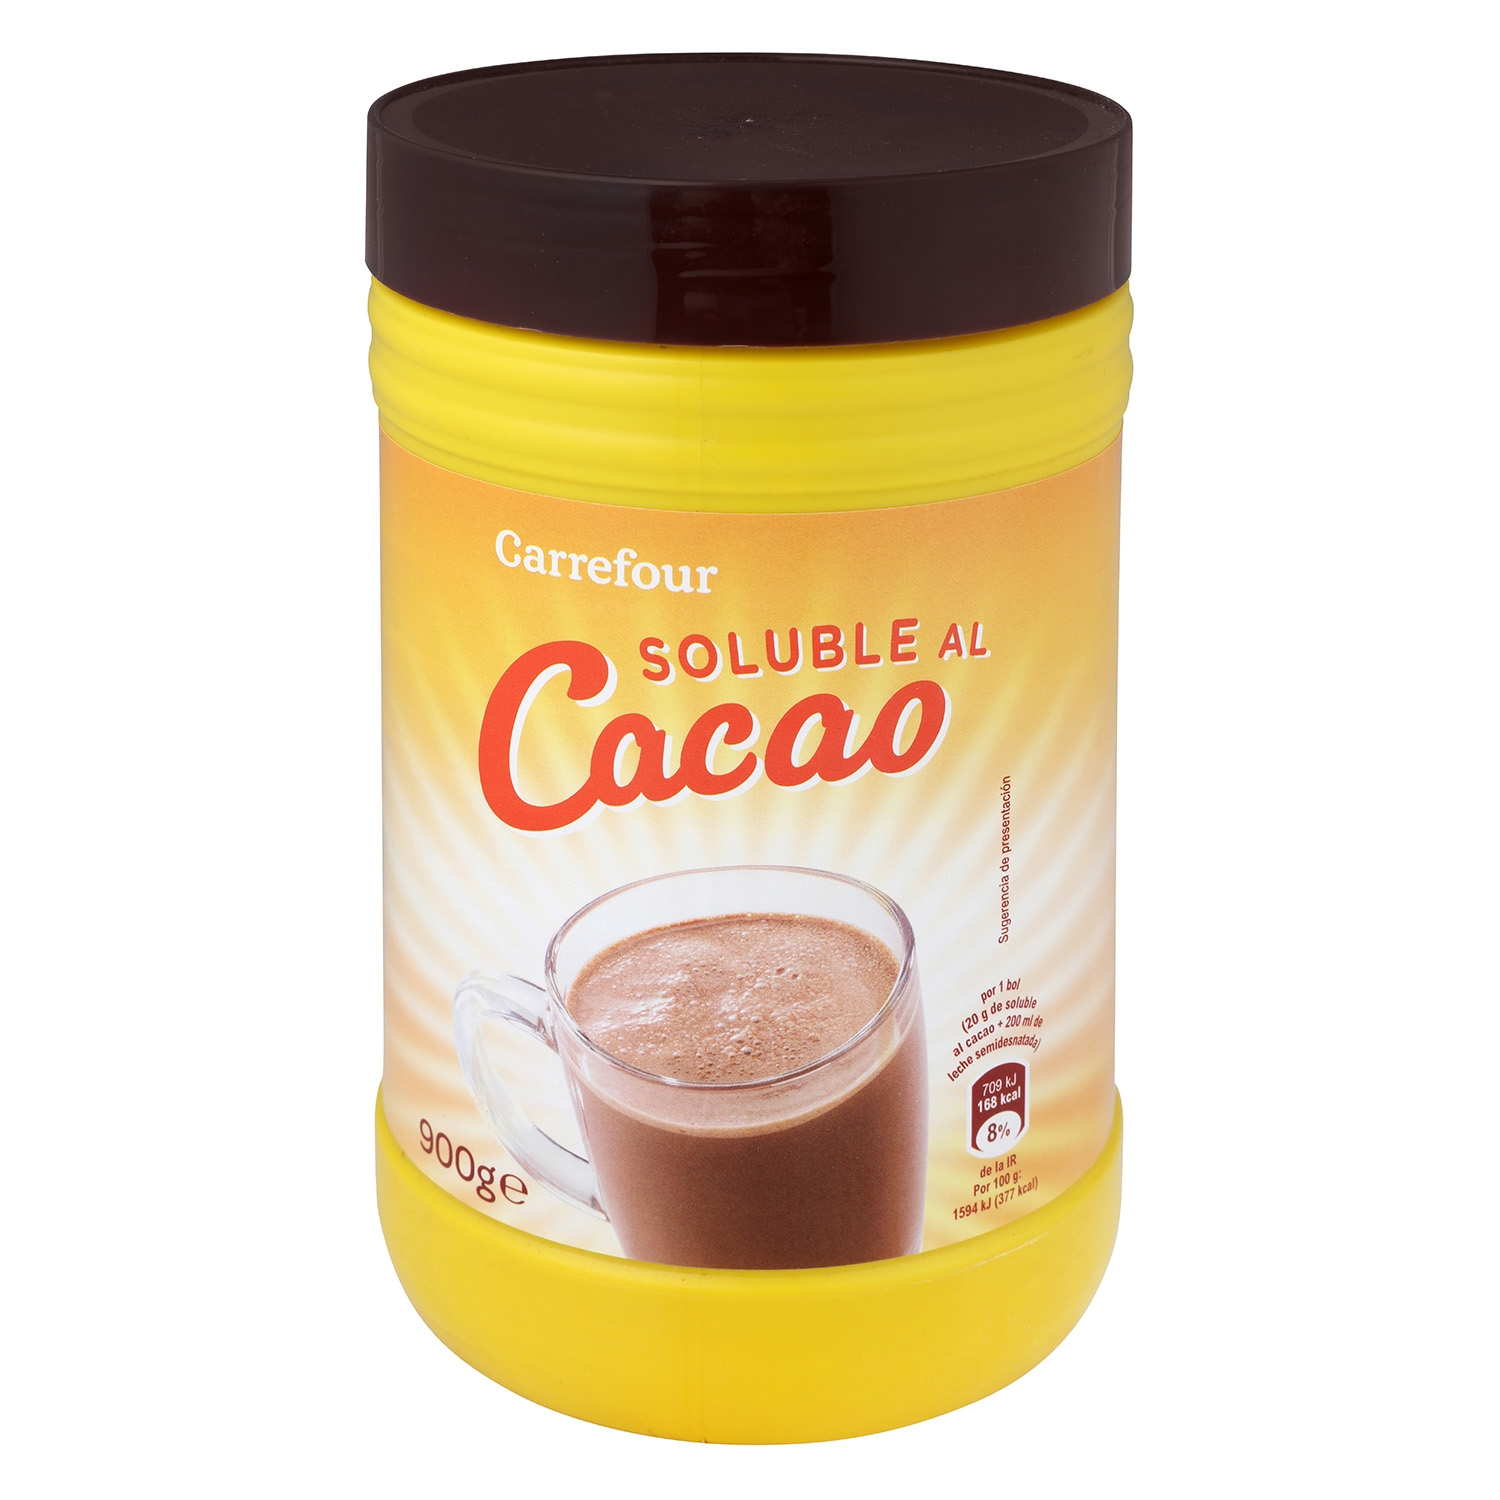 Cacao soluble Carrefour 900 g.